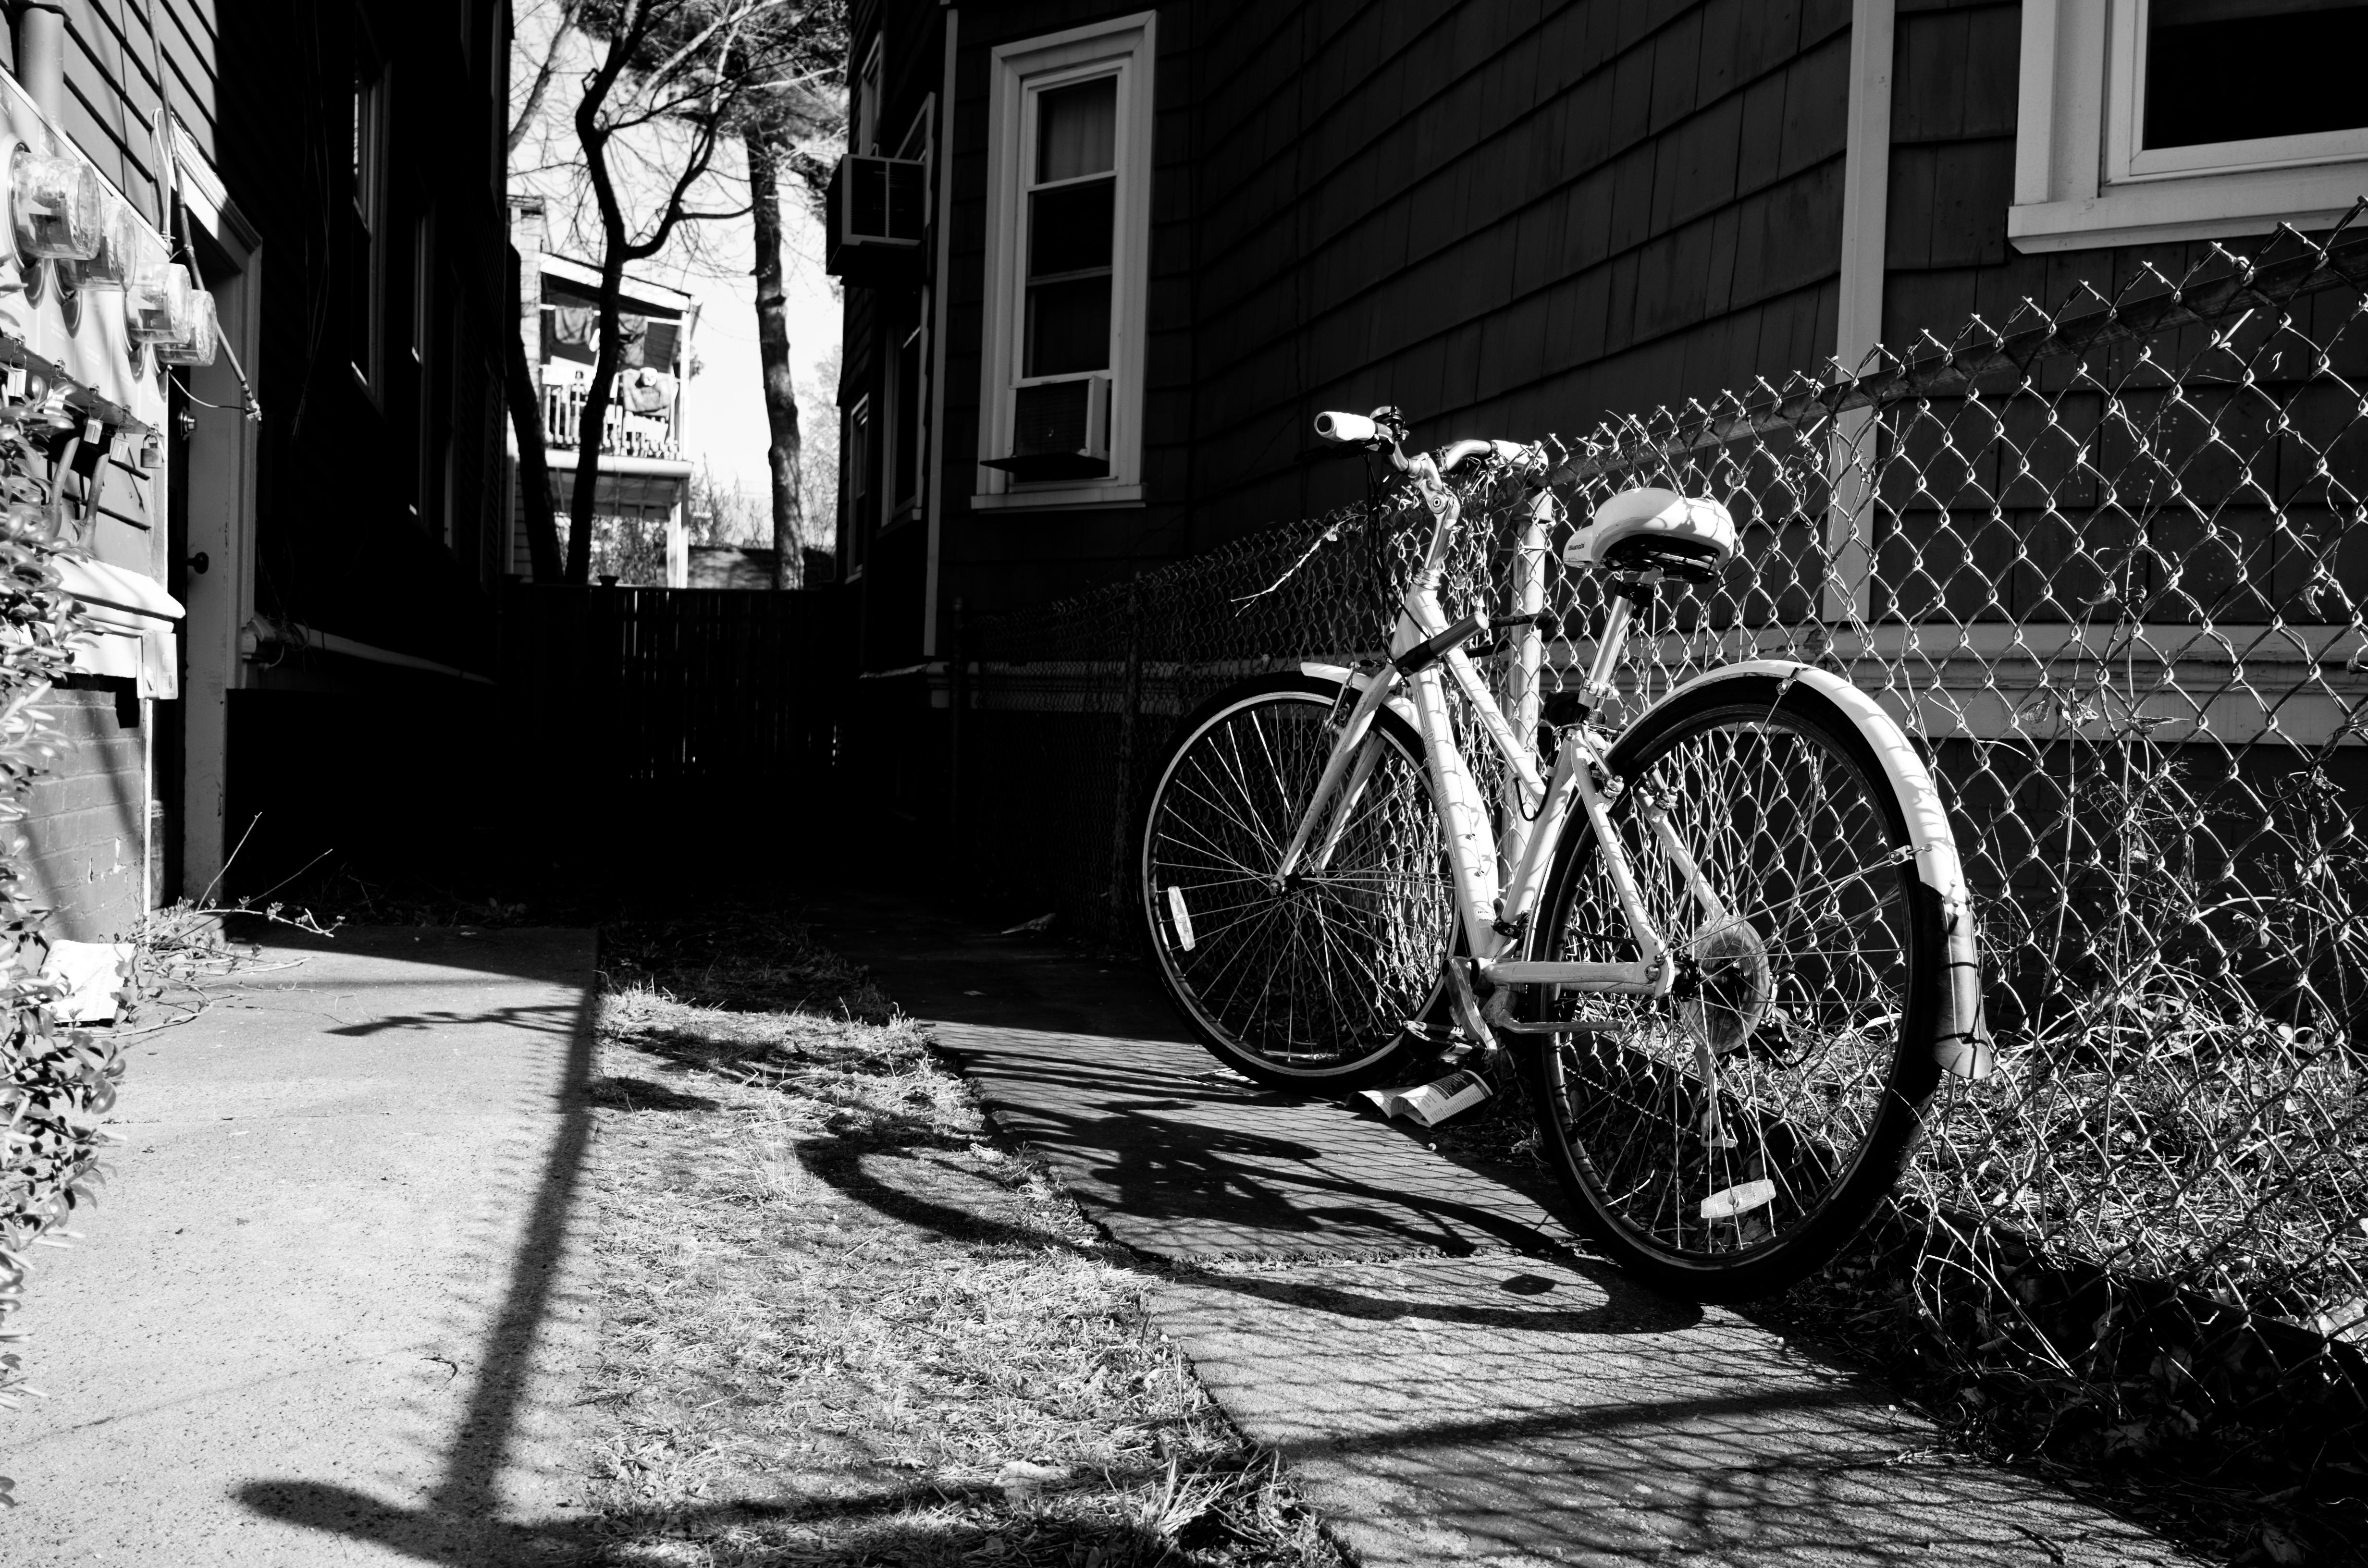 The Leica T is a very fun camera to shoot with, especially street scenes.